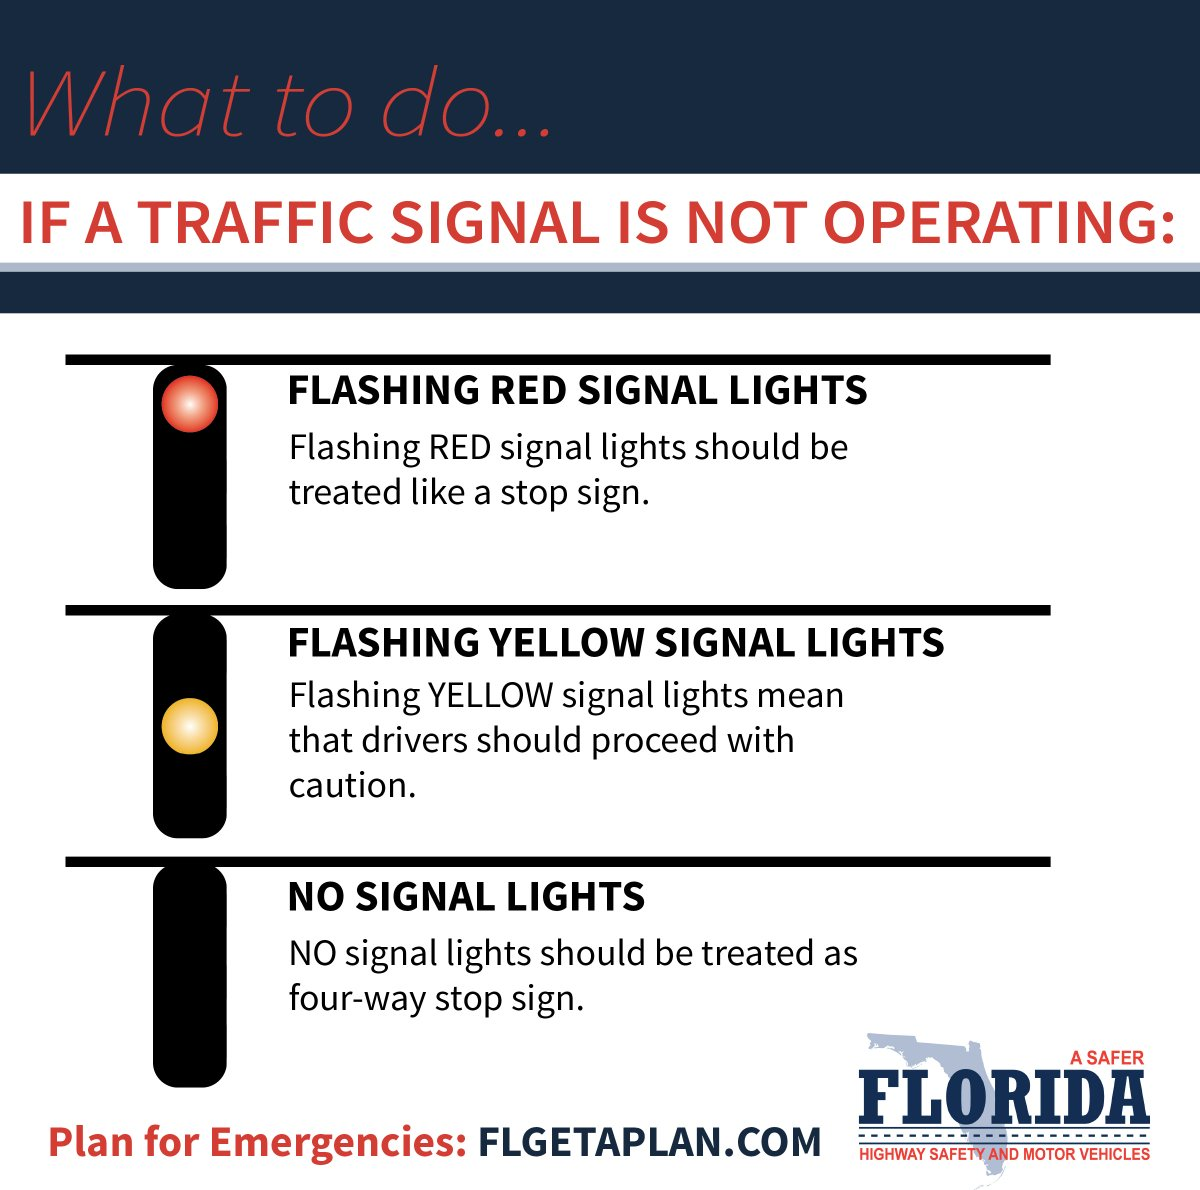 If a traffic signal is out of order, treat the light/intersection as a four-way stop sign. https://t.co/aomuLr6DzJ